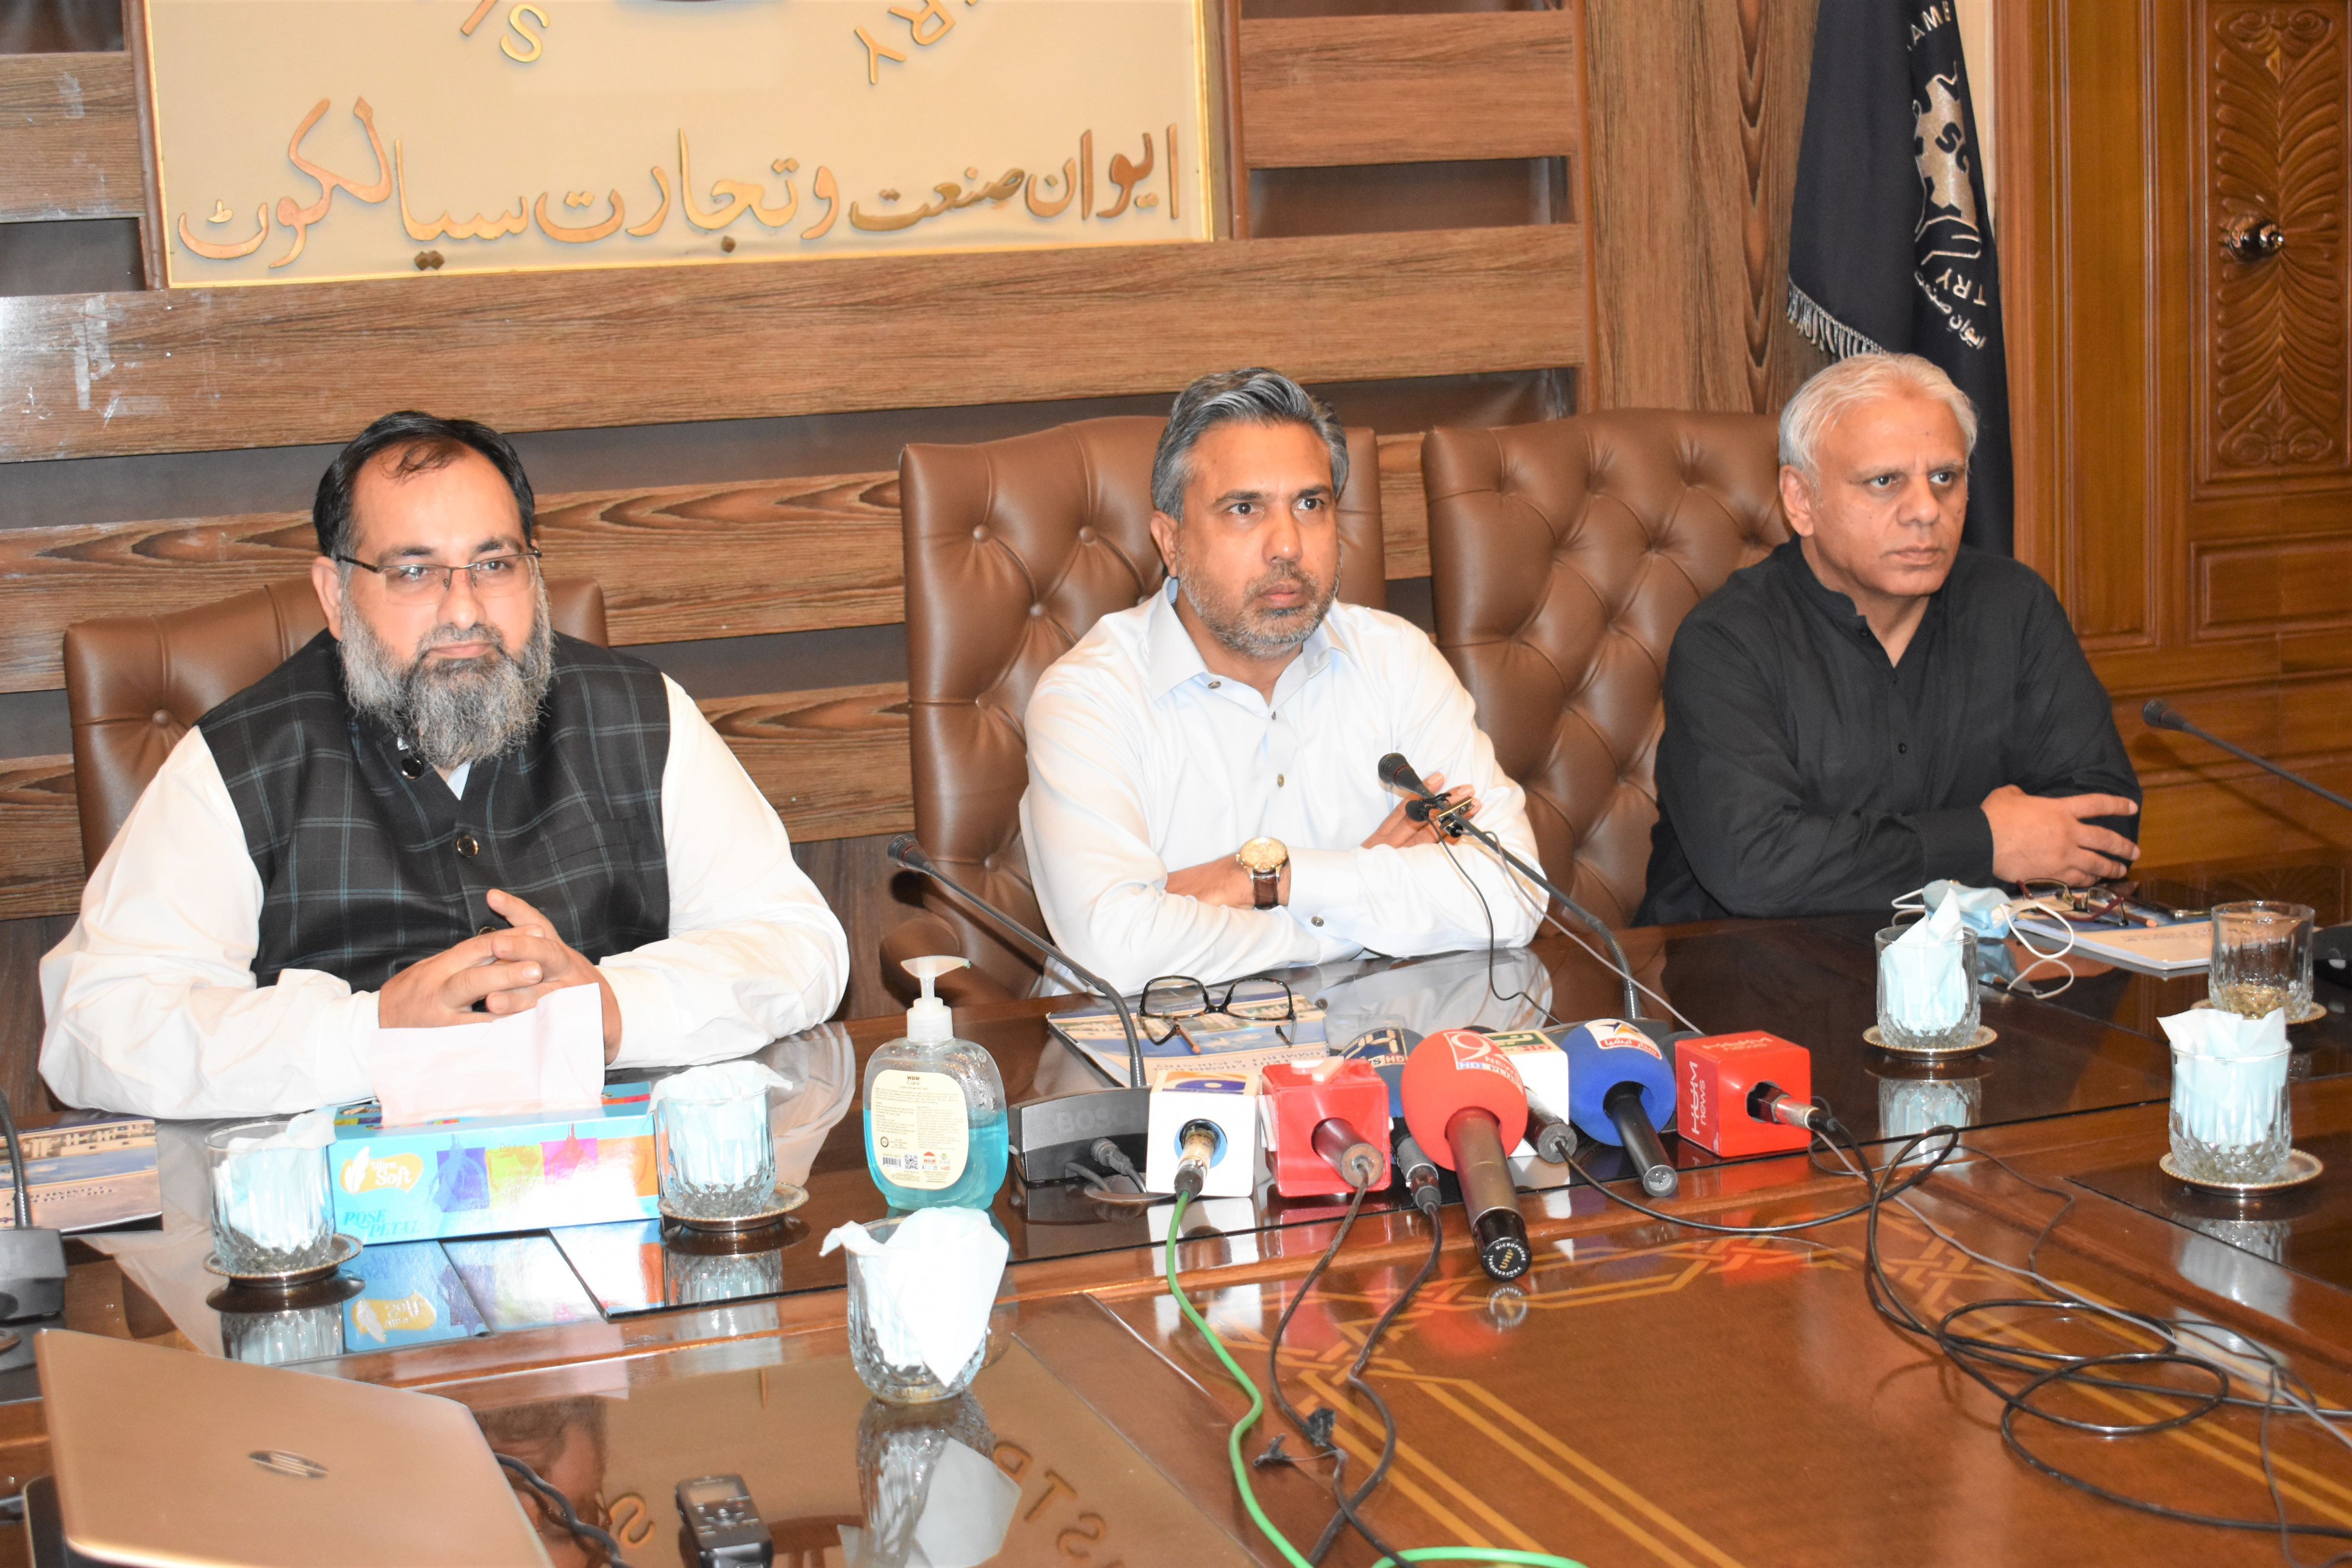 On June 11, 2021, A Budget announcement ceremony was arranged at Sialkot Chamber of Commerce and Industry. Mr. Qaisar Iqbal Baryar, President, Mr. Khuram Aslam, Senior Vice President, Mr. Ansar Aziz Puri, Vice President and Members of Executive Committee of SCCI also attended the session.   Mr. Qaisar Iqbal Baryar, President, SCCI endorsed the National Budget 2021-22 and said that it will have positive impact on the businesses. It will enhance the export productivity of the country and would also help the common man.  Business Community of Sialkot also participated in the session and exchanged their views on the exemptions and facilitations mentioned in the budget.